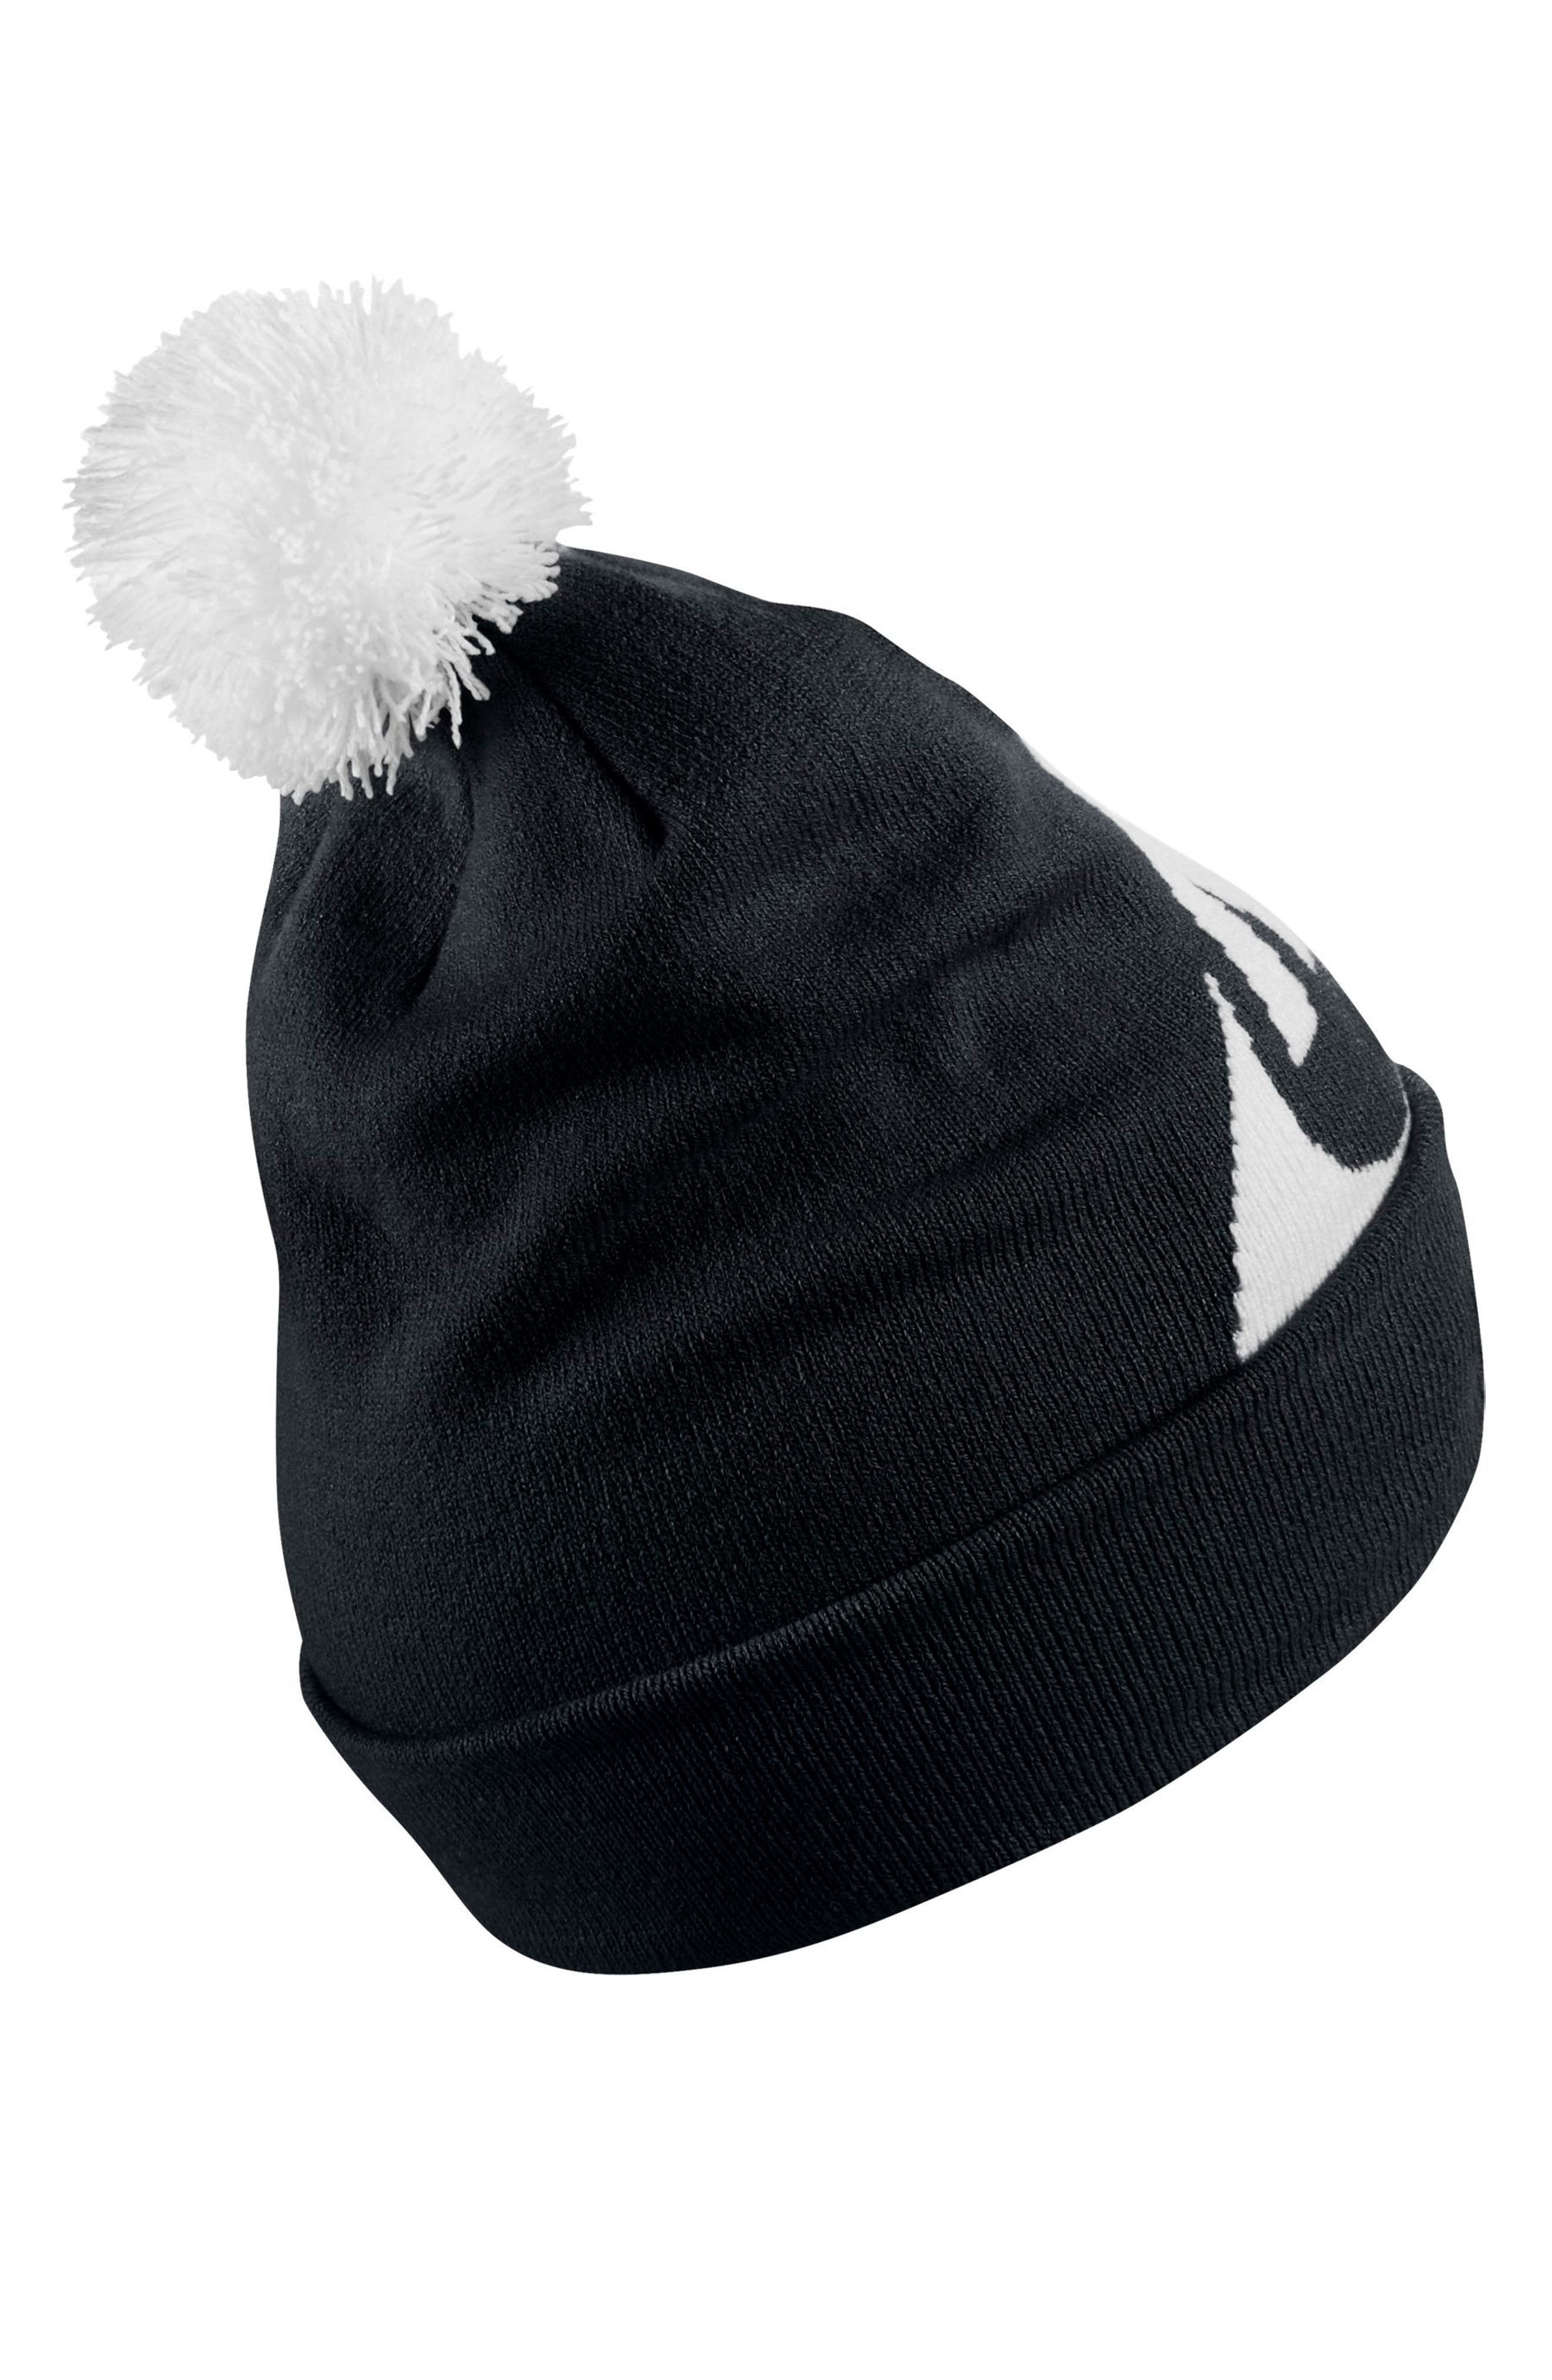 Sportswear Women's Beanie with Removable Pom,                             Alternate thumbnail 2, color,                             Black/ White/ White